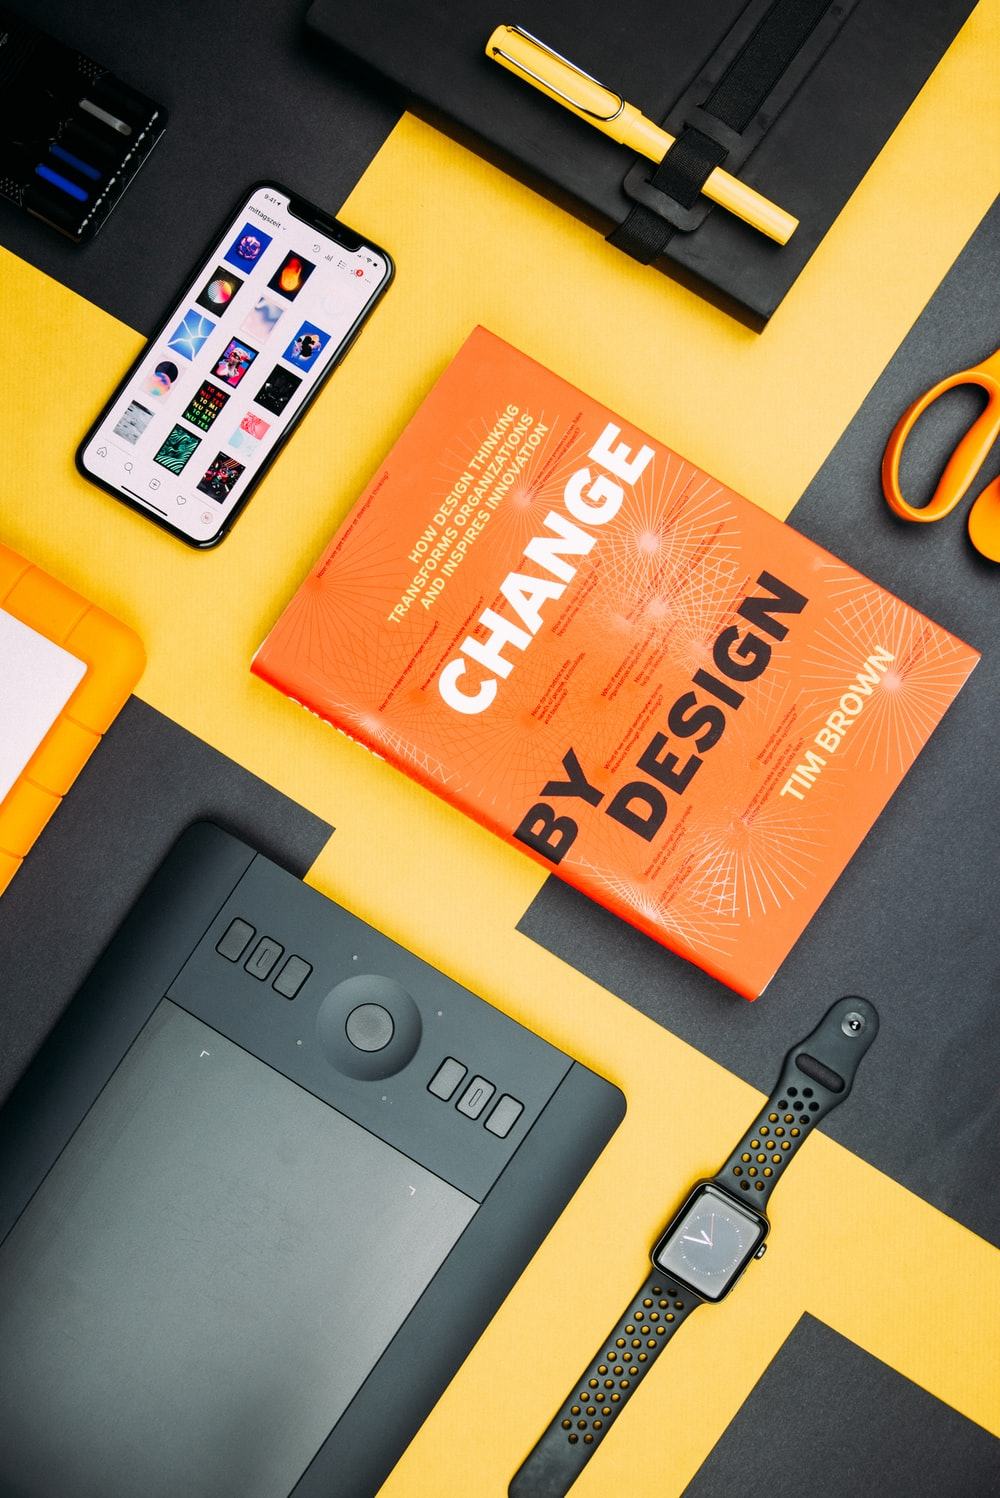 Change by Design by Tim Brown book beside smartphone